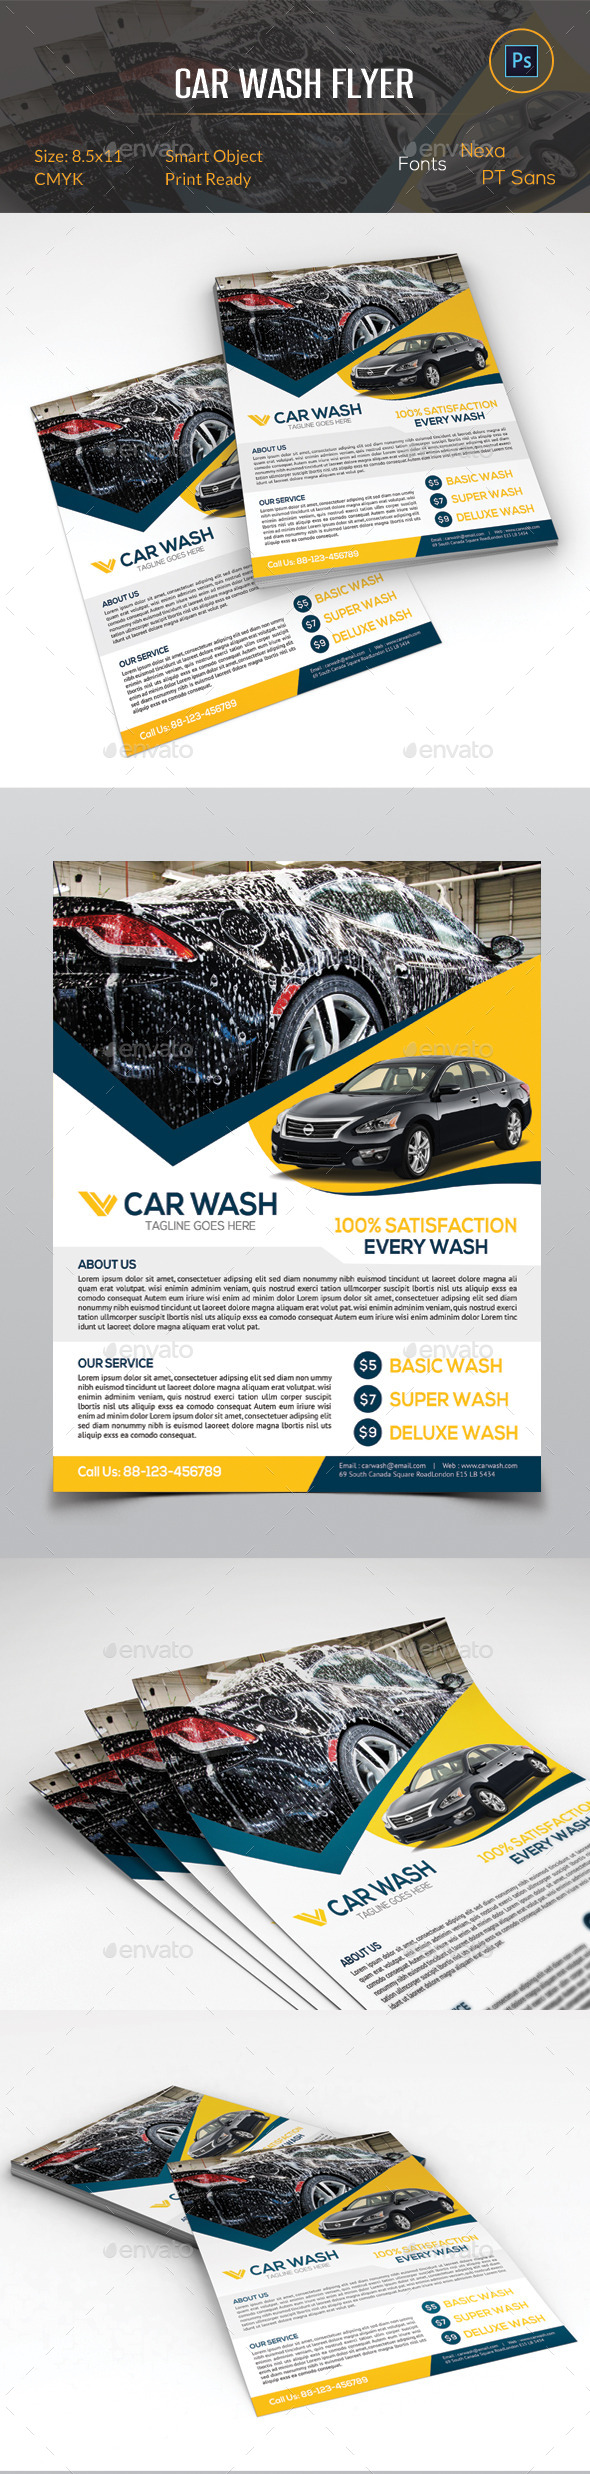 GraphicRiver Car Wash Flyer 11032410